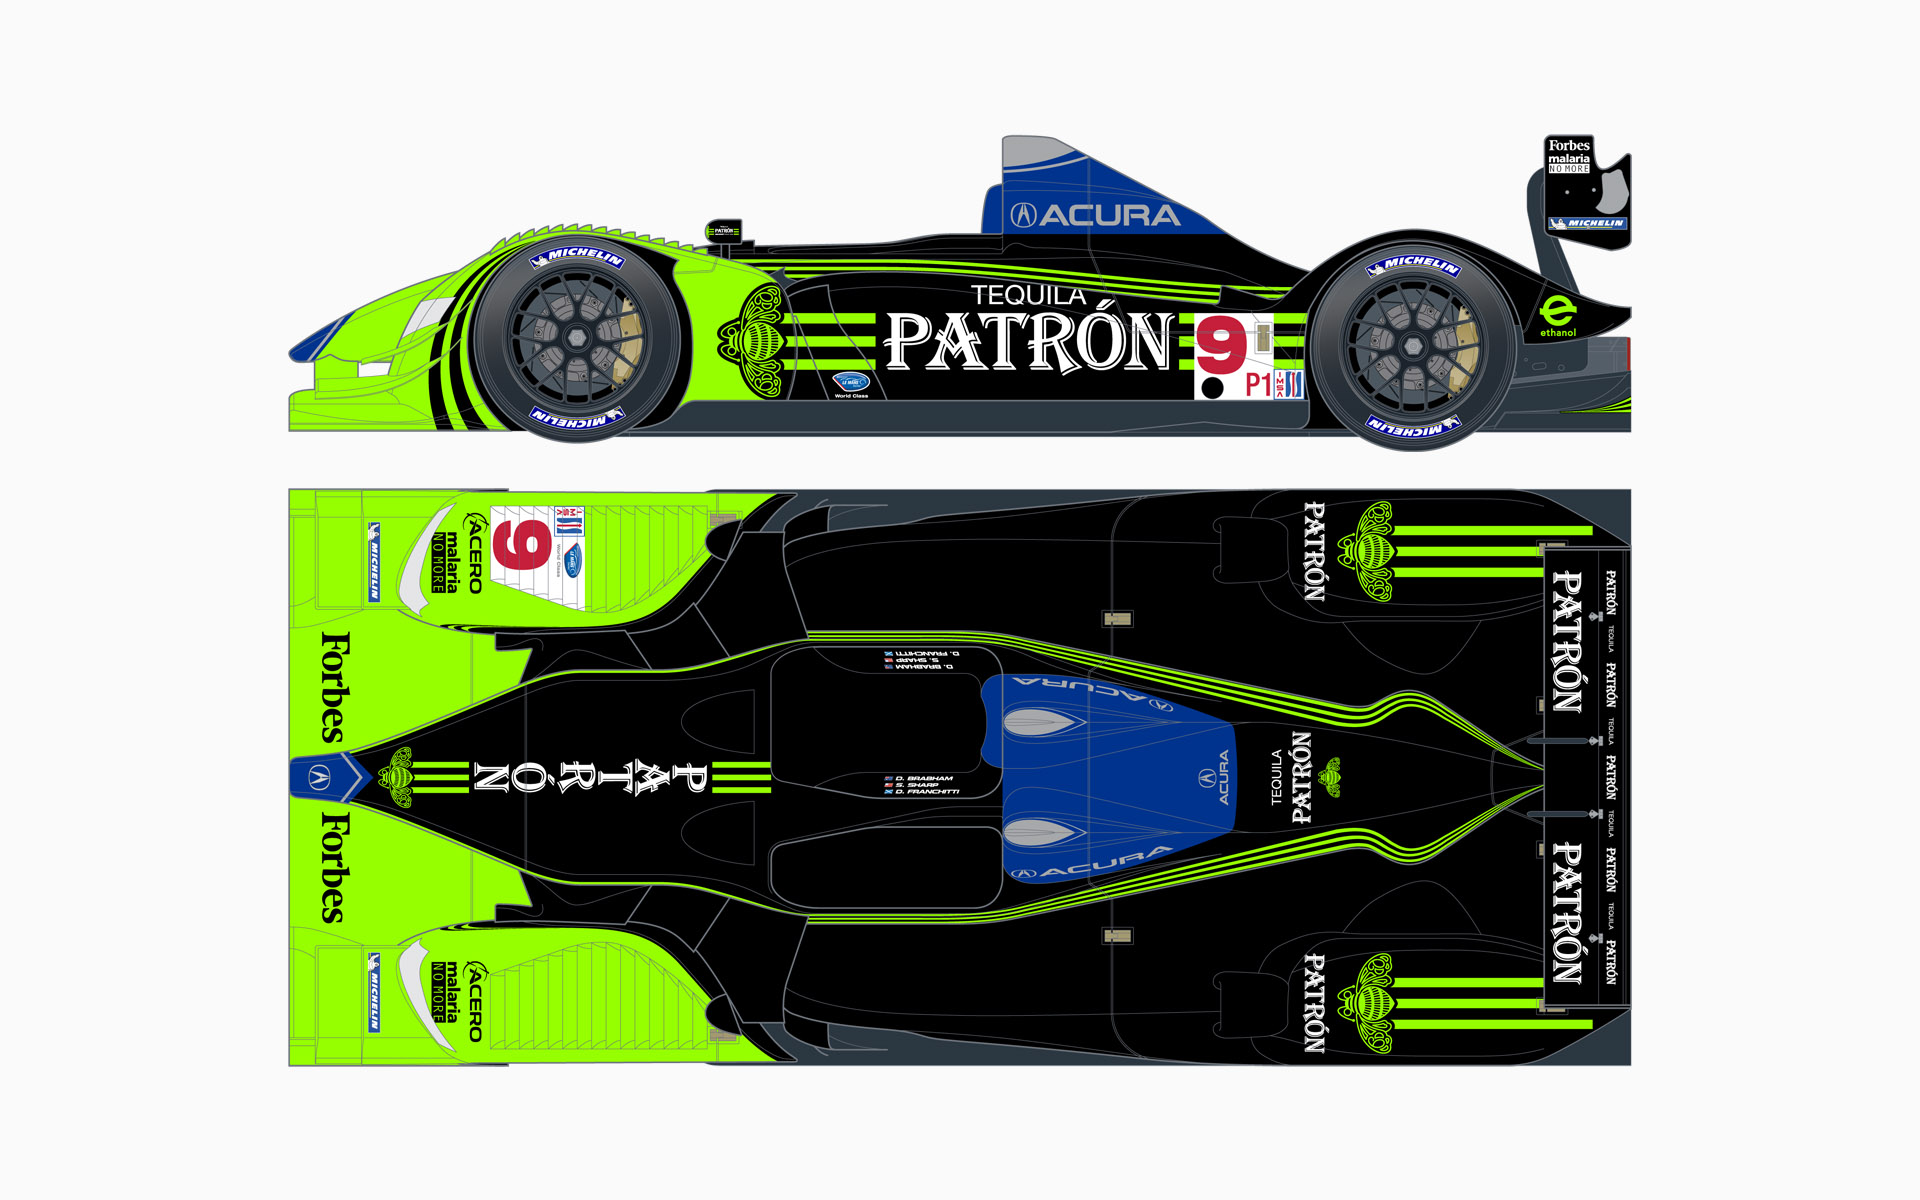 2009 Pátron Highcroft Racing Acura ARX-02a LMP1 Livery Elevations